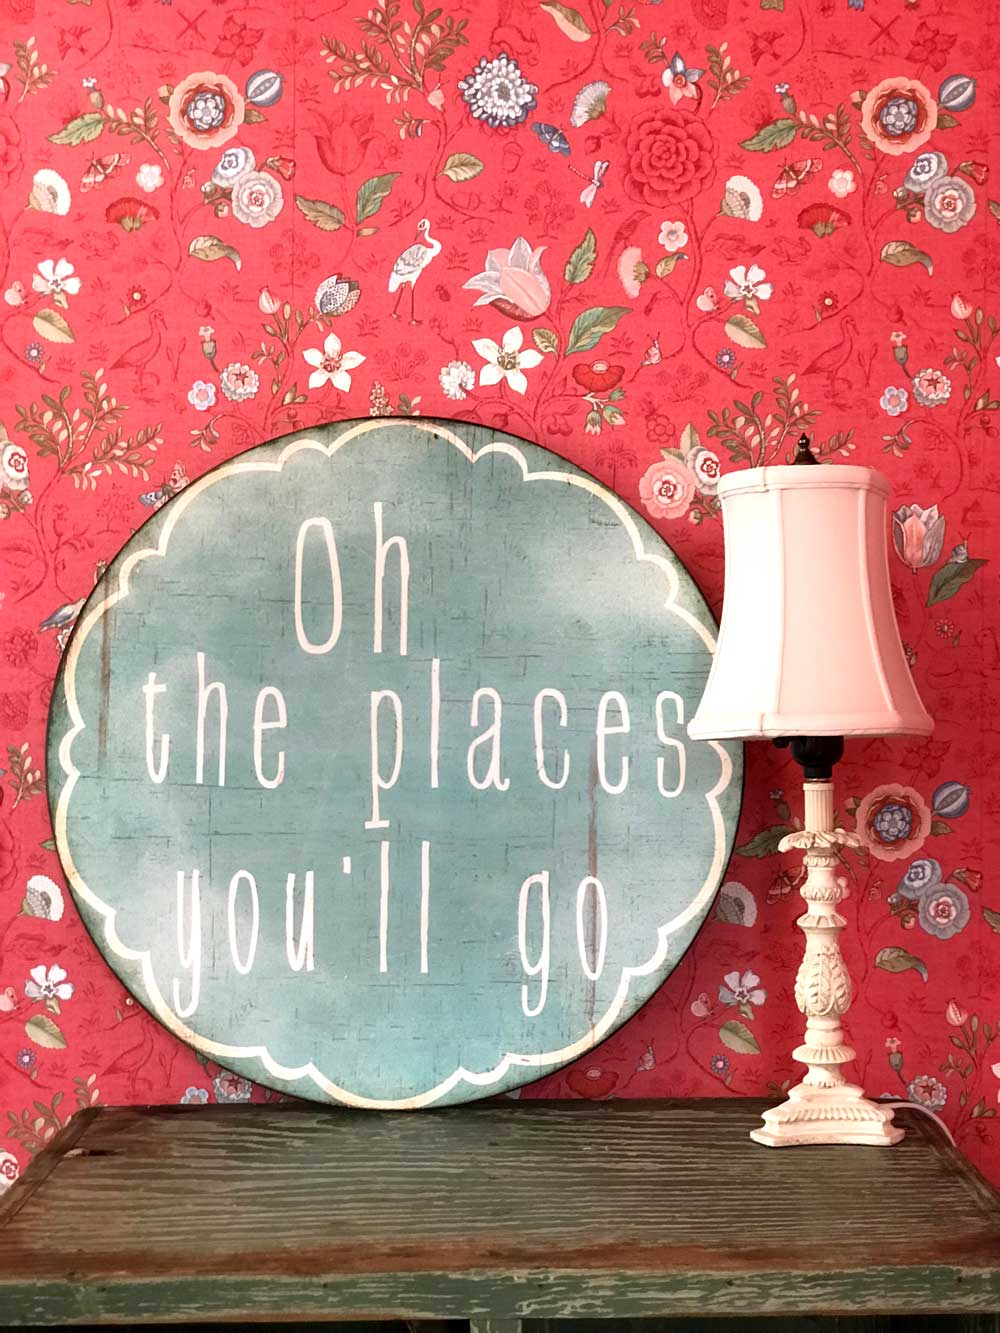 Sign that reads: oh the places you'll go next to decorative lamp